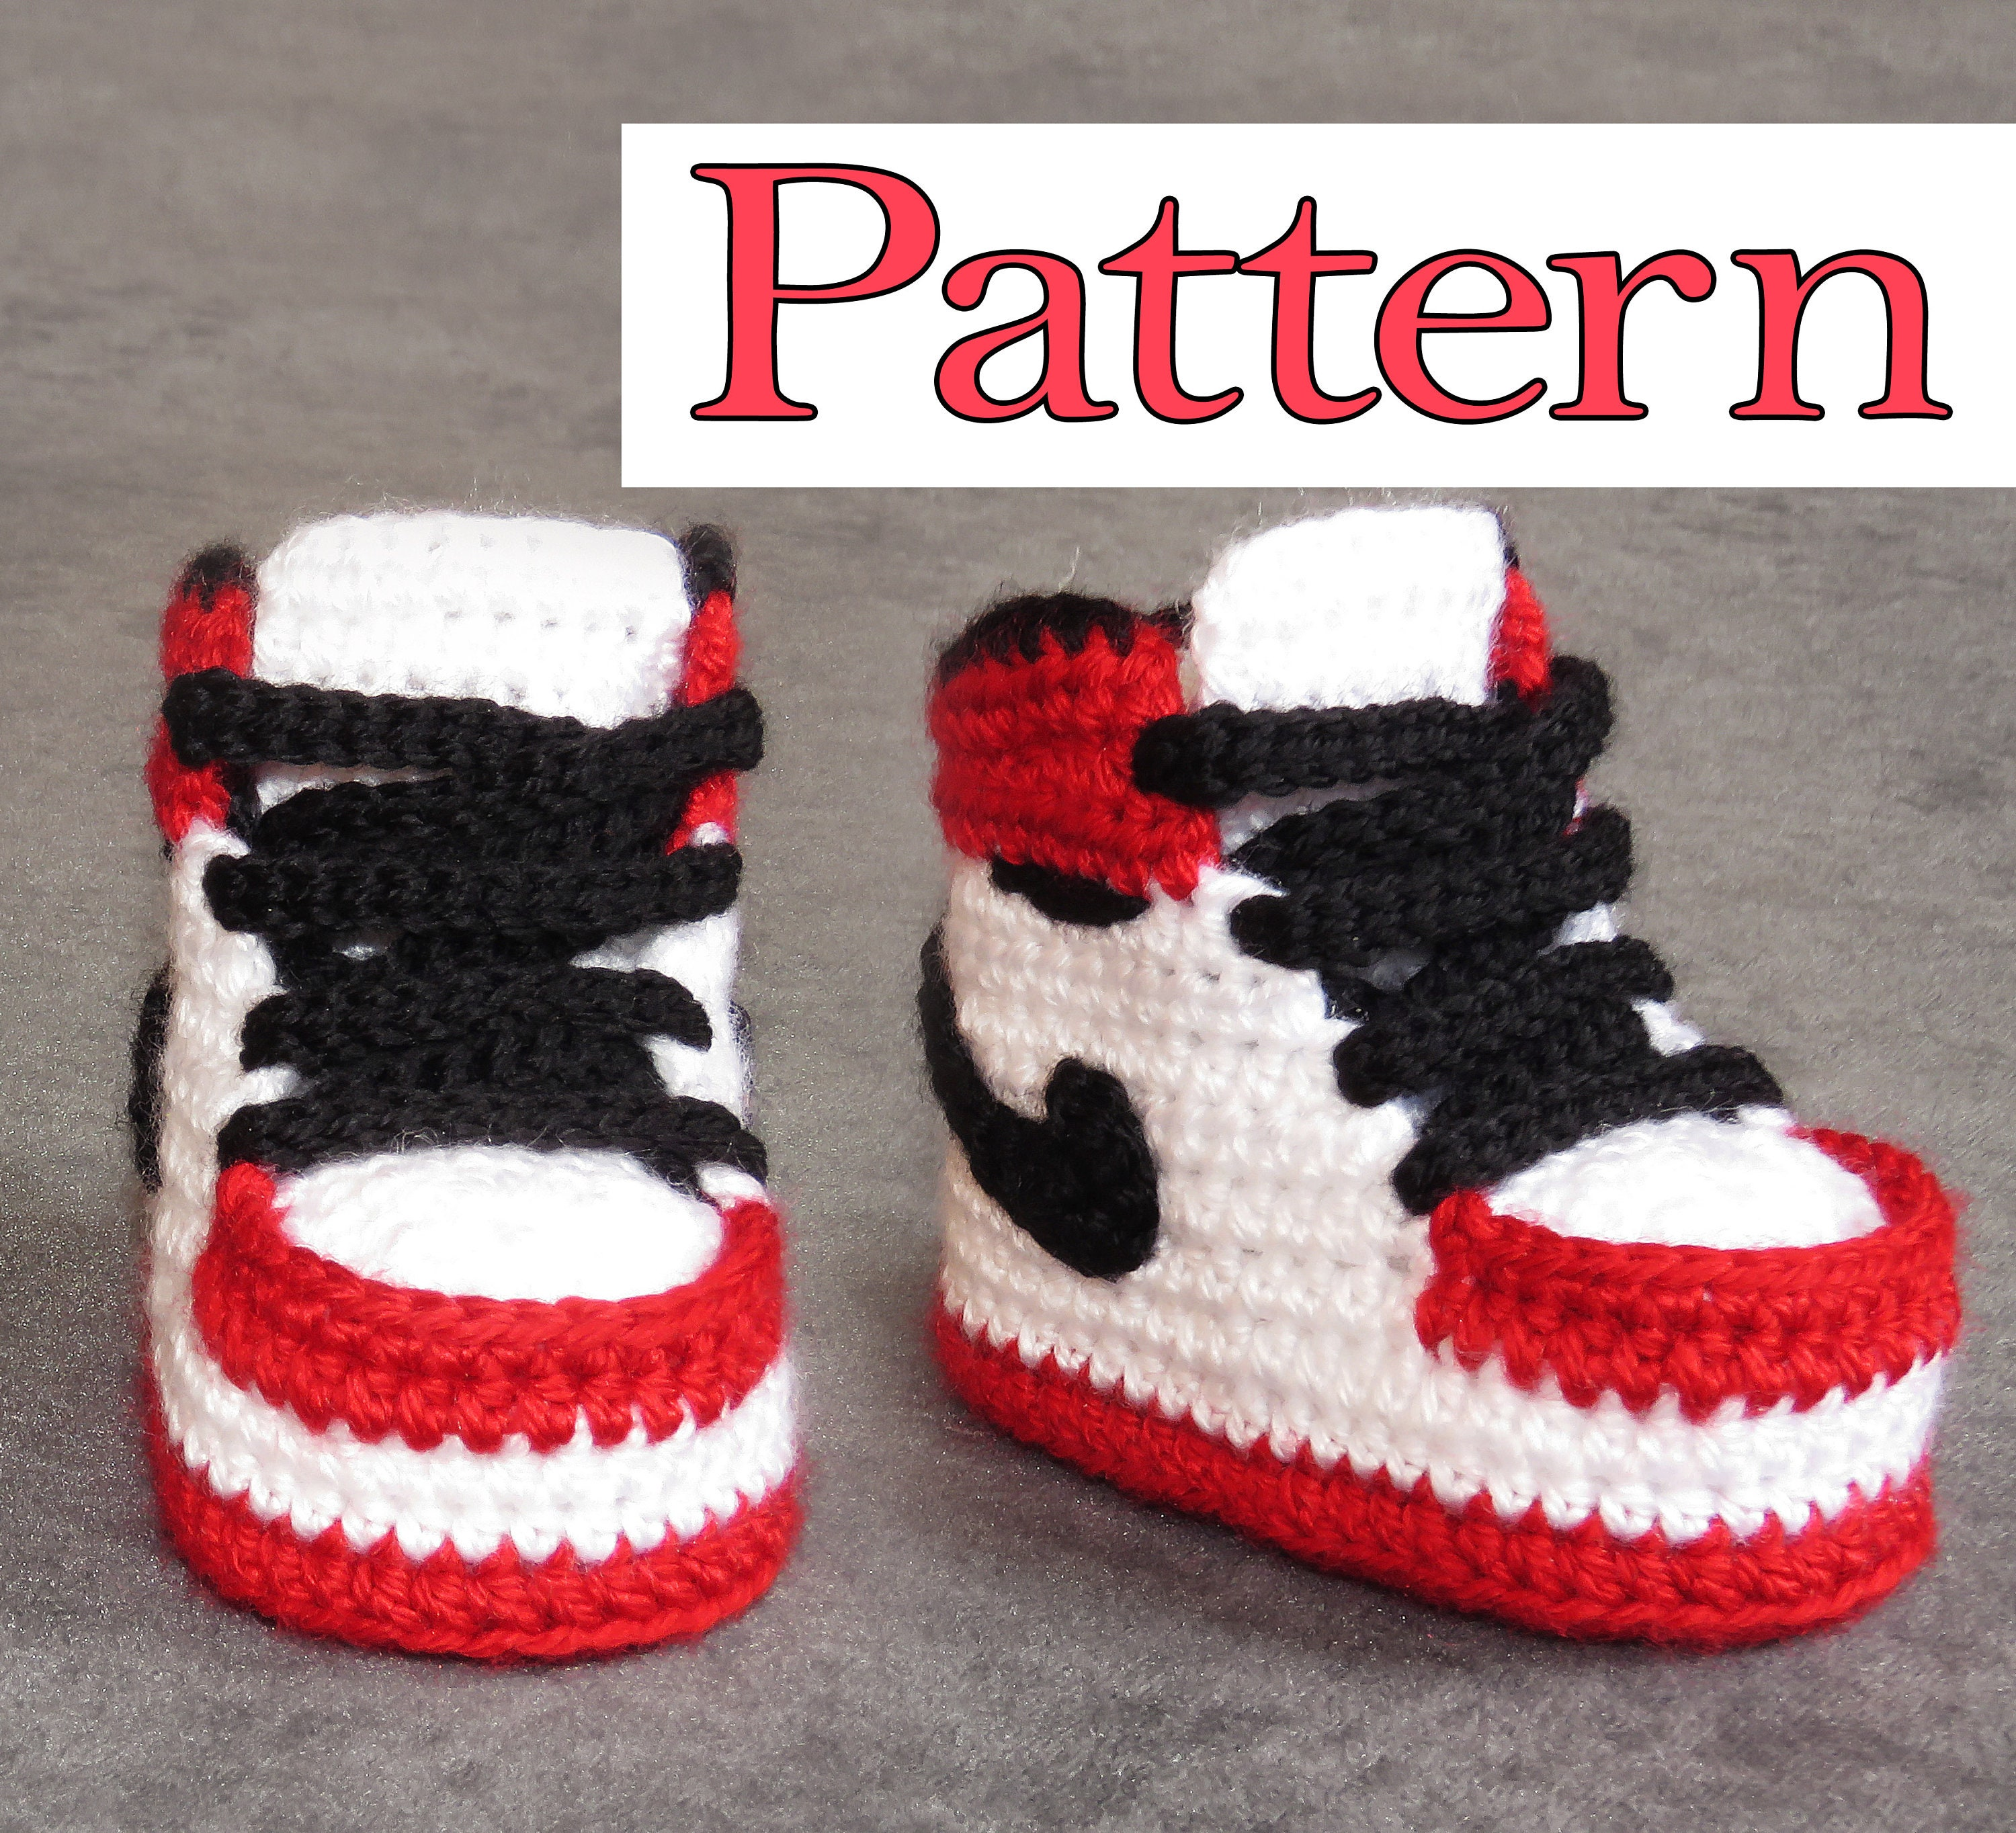 ee78f2587dd9 Air Jordan Crochet Pattern for crochet baby booties crochet